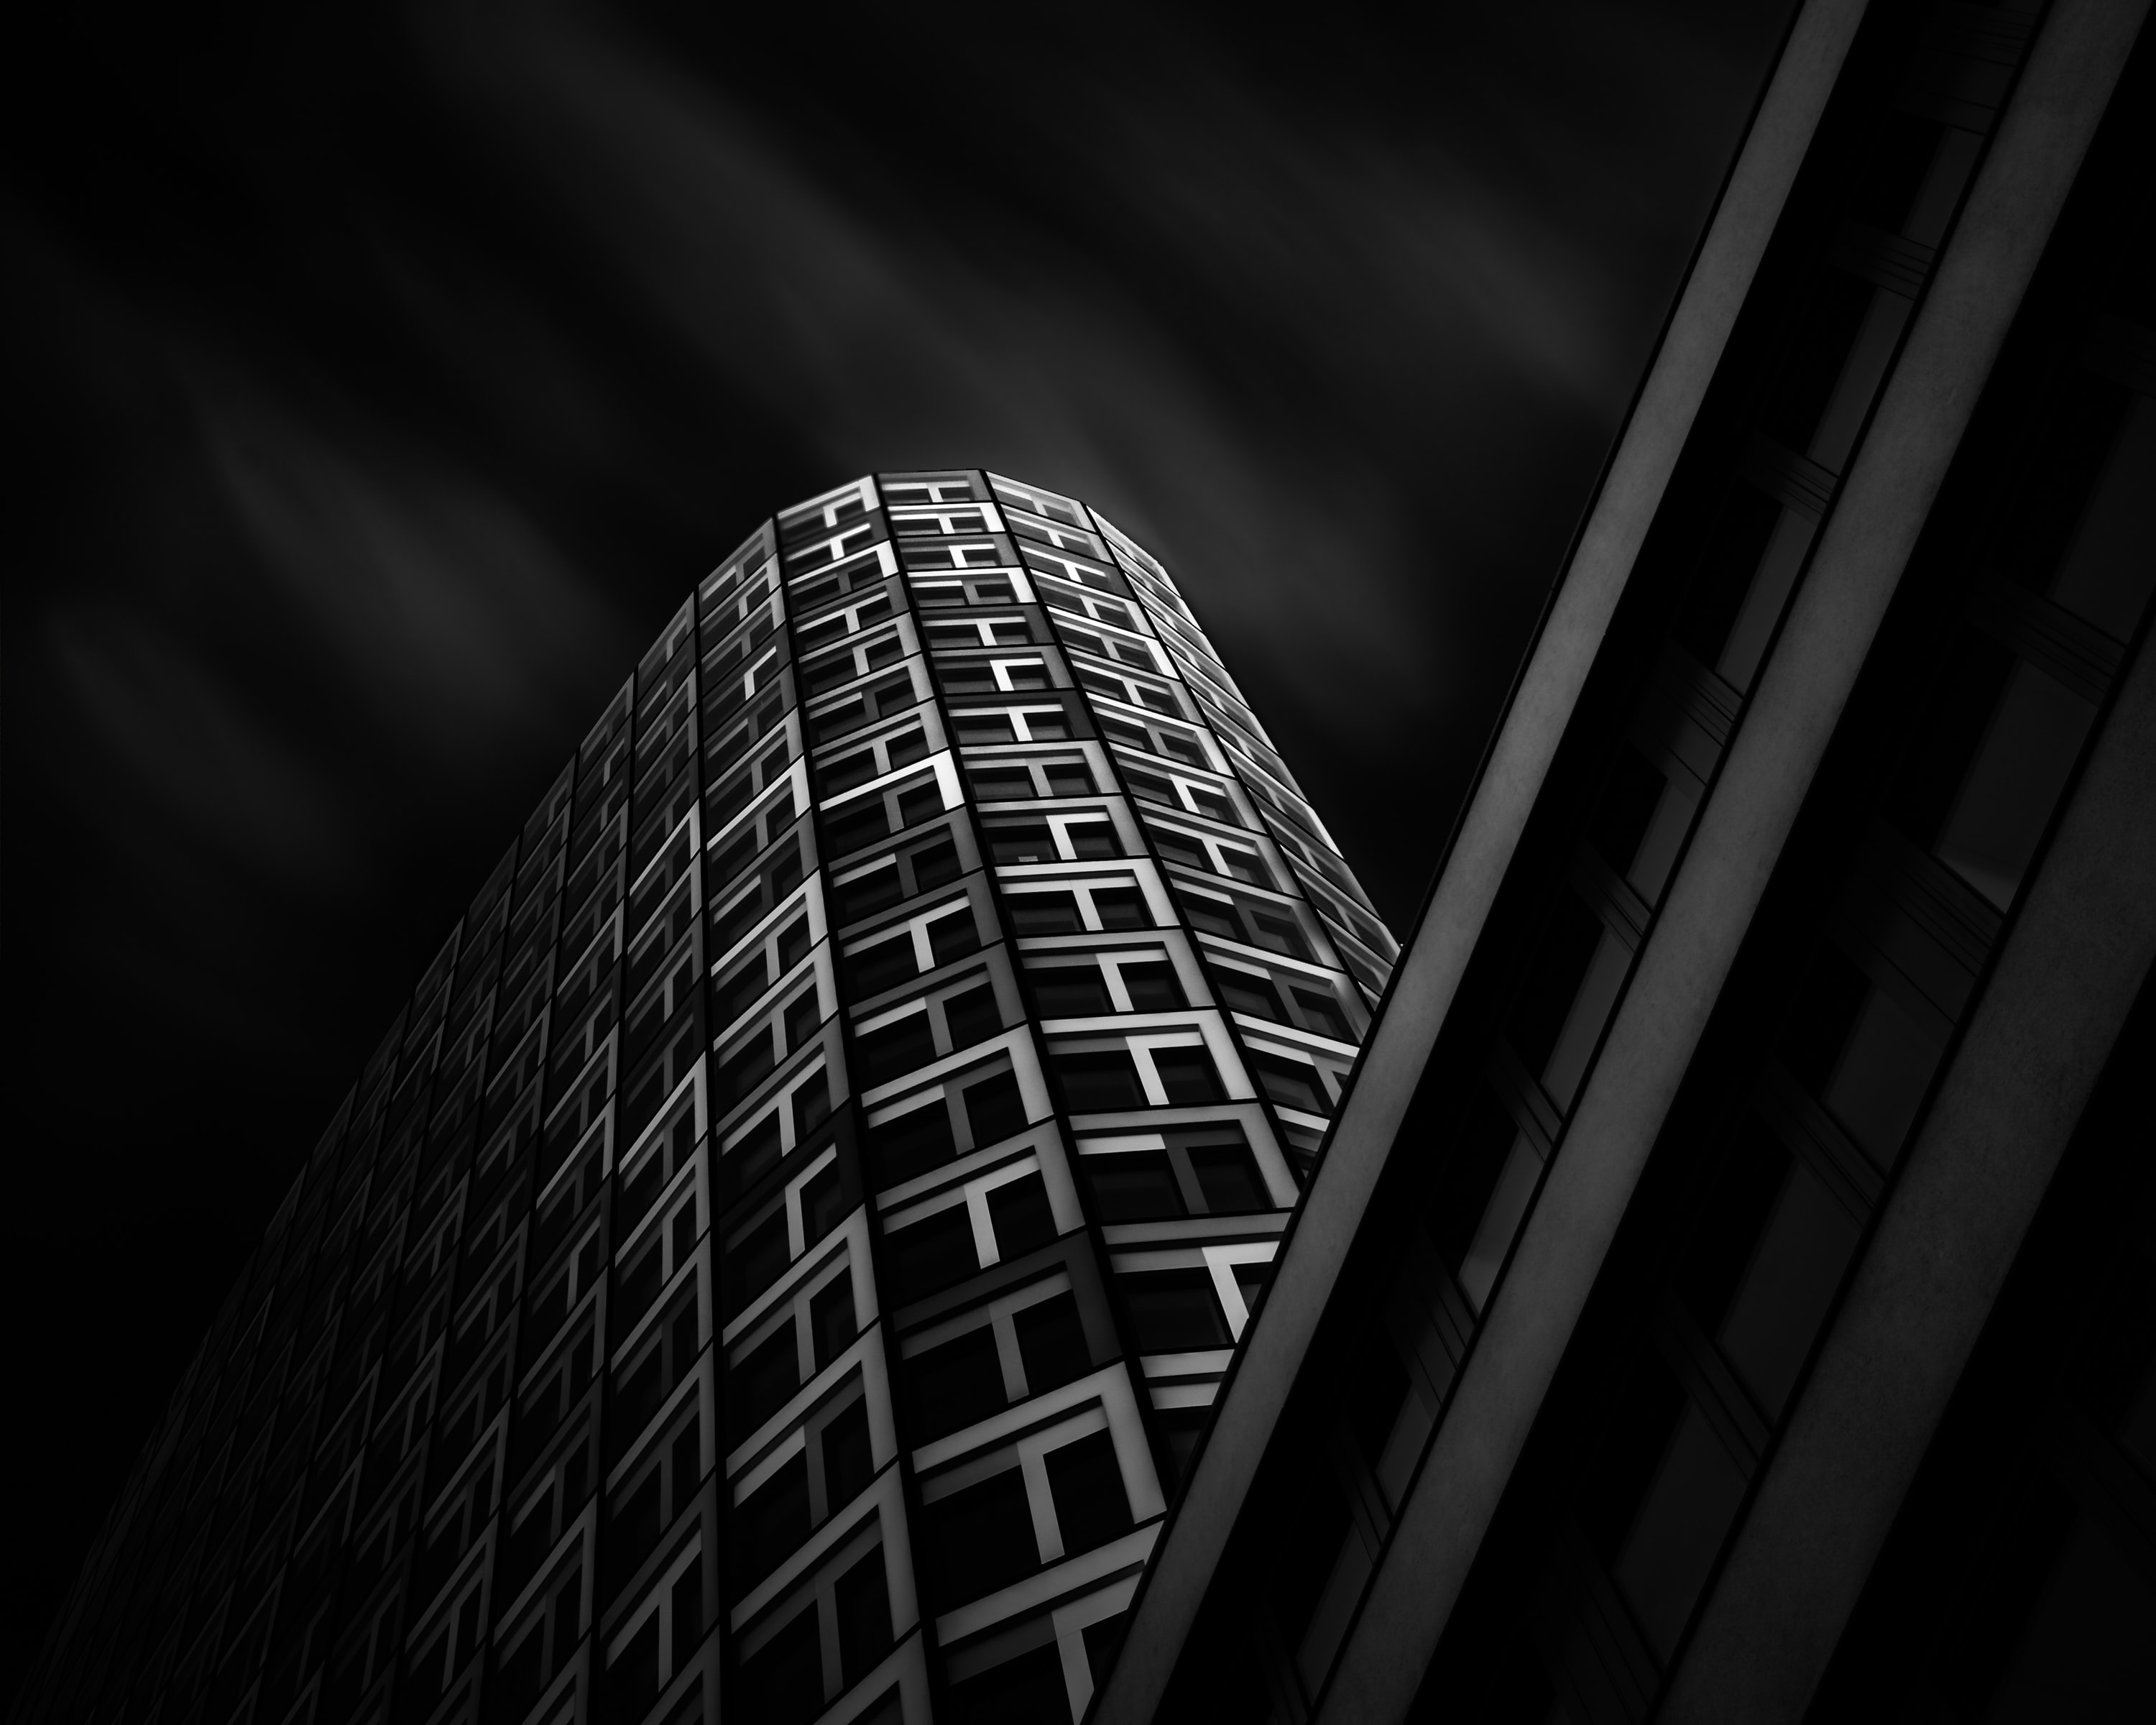 worm's eye view photography of building